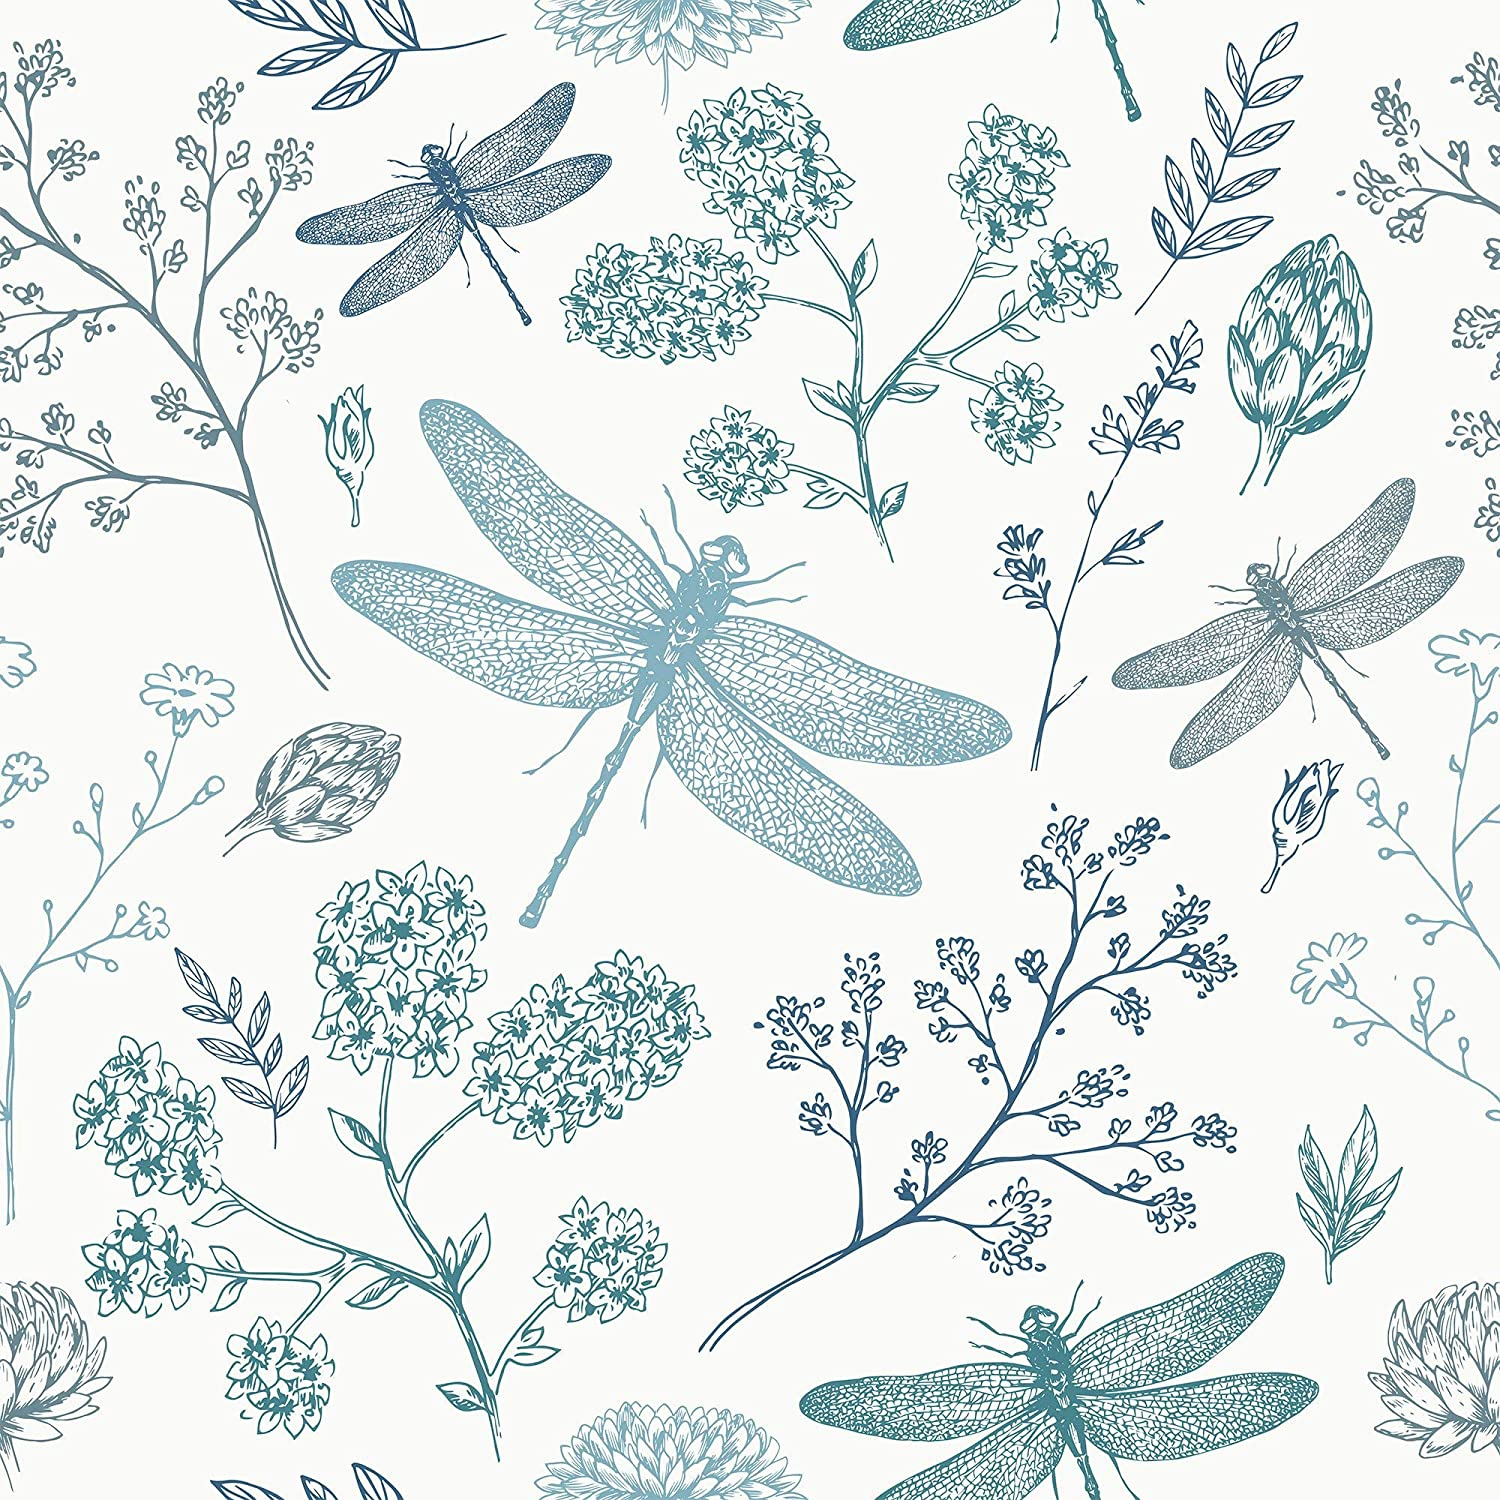 Wallsbyme Peel And Stick Navy Blue And Aqua Floral Animal Fabric Removable Wallpaper 6672 2ft X 4ft 61x122cm Amazon Com